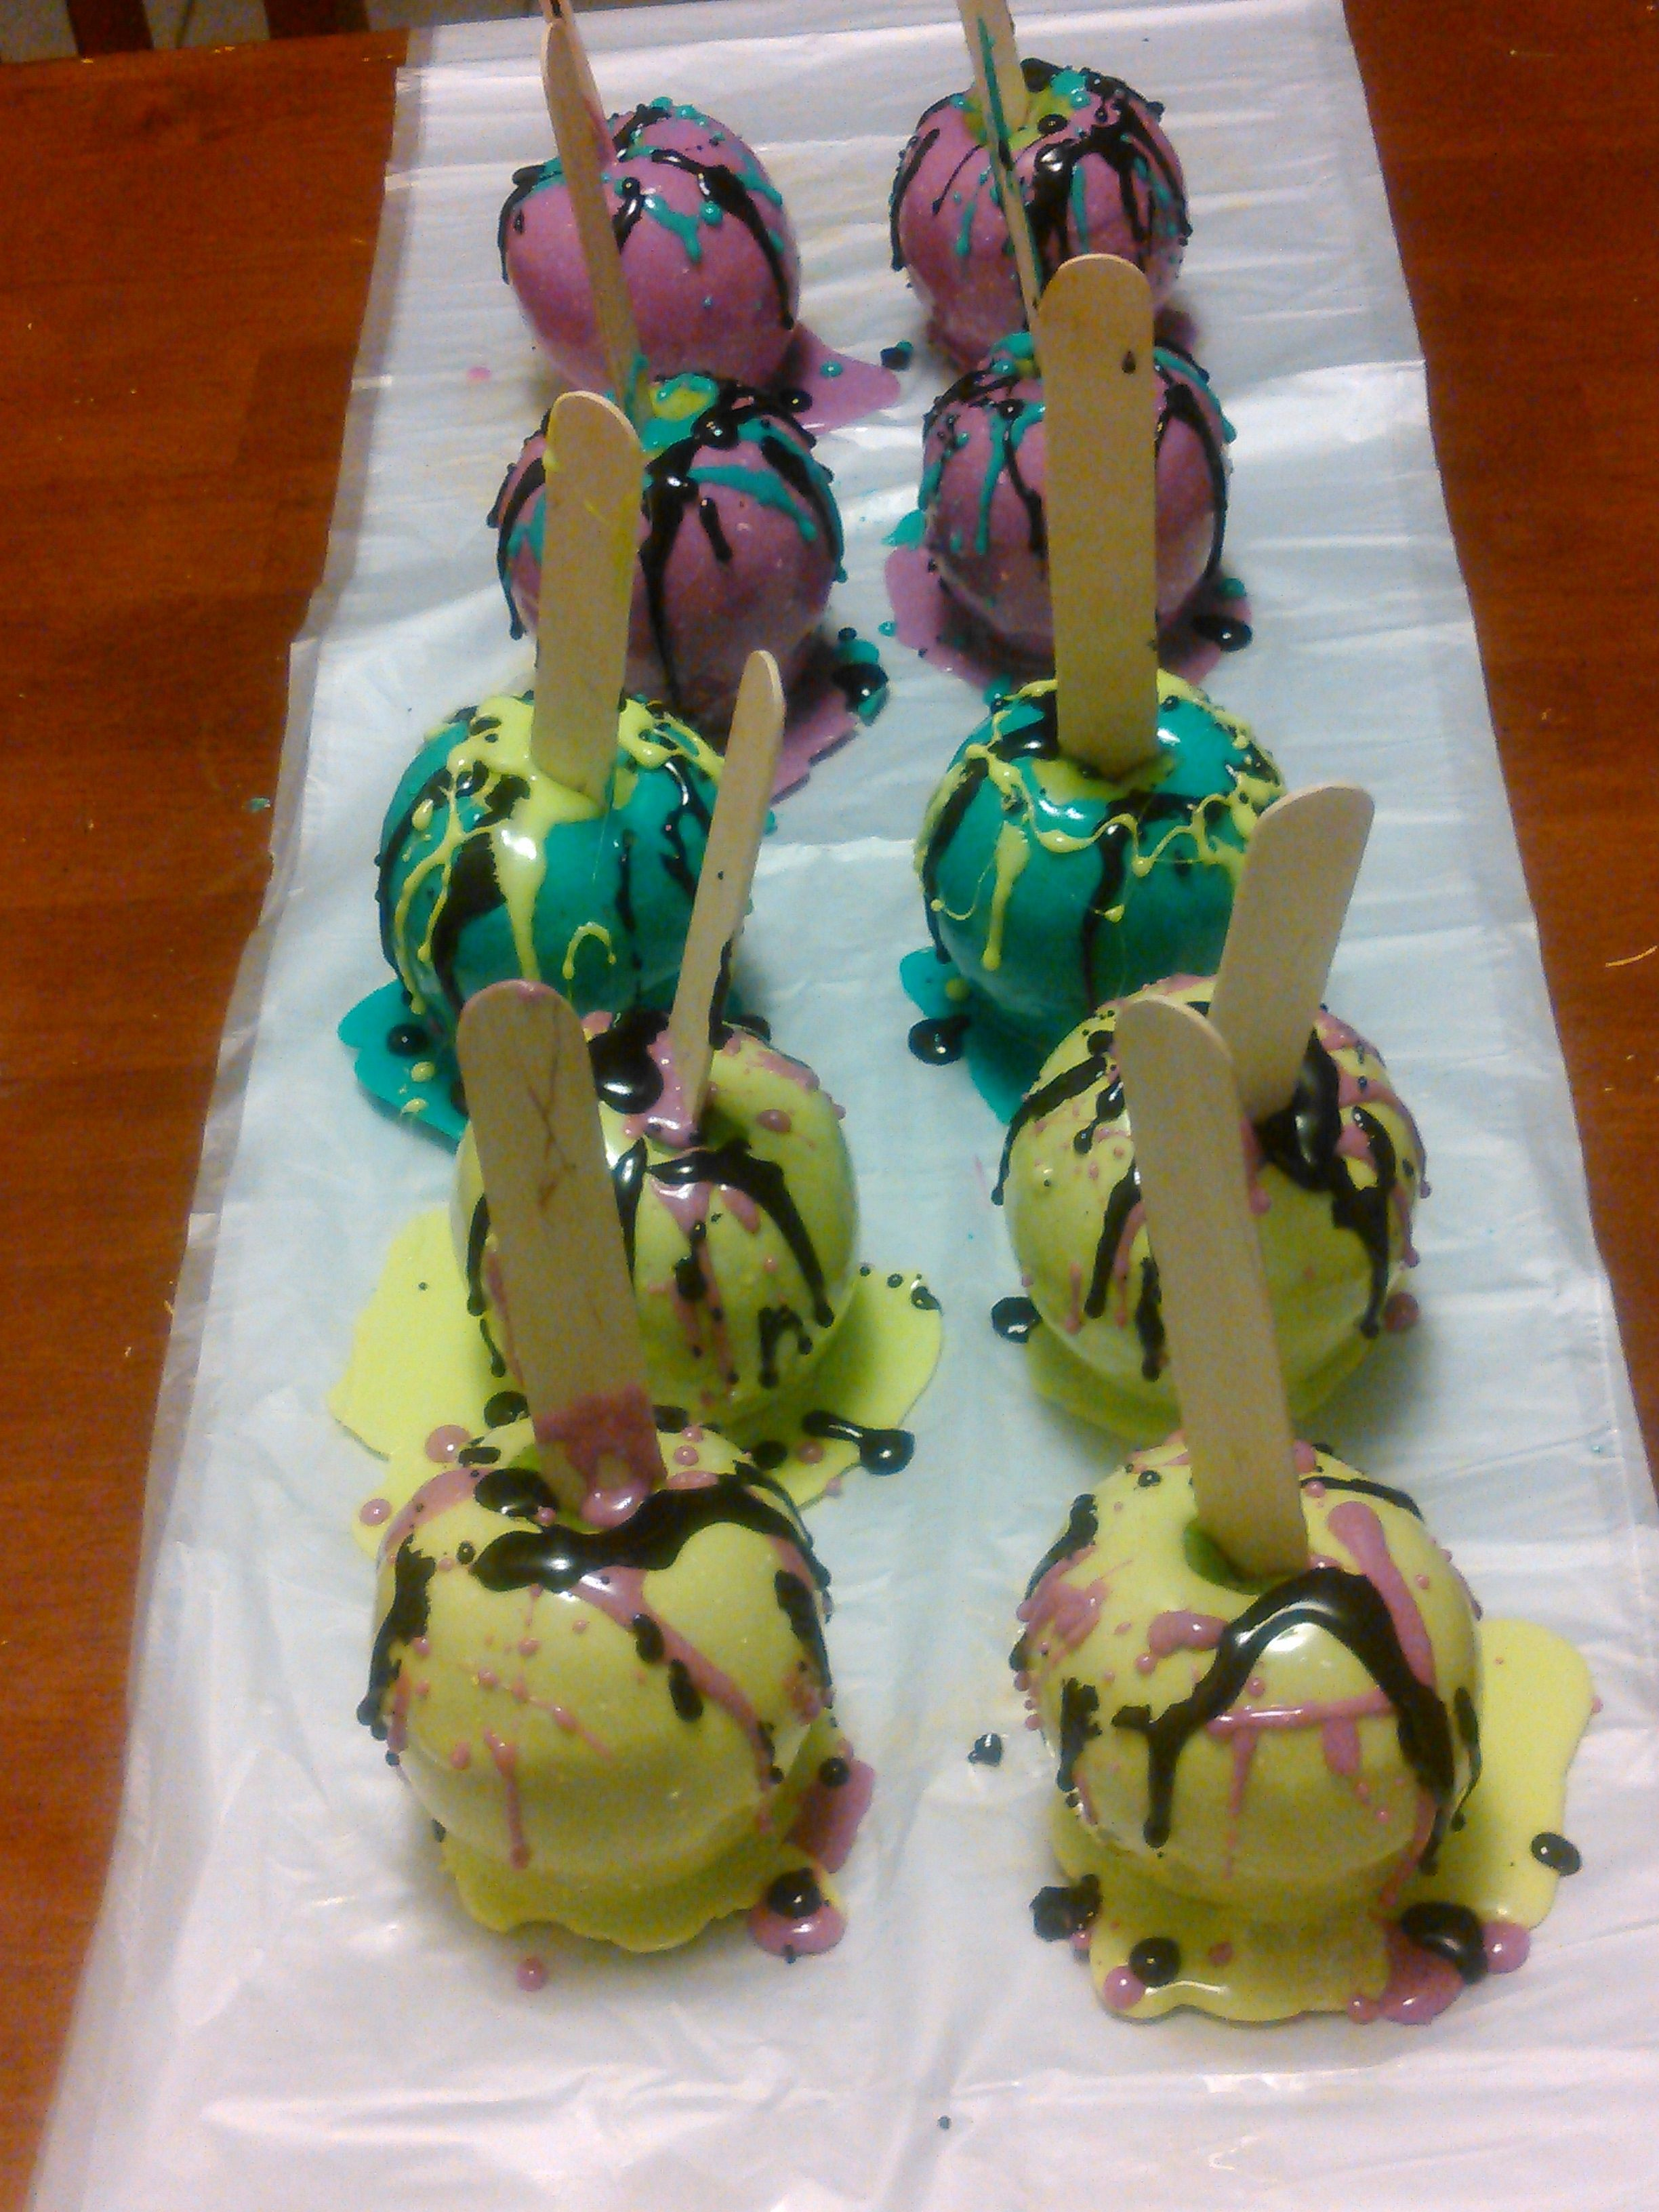 Splattered Candy Apples For a Paint Party ....